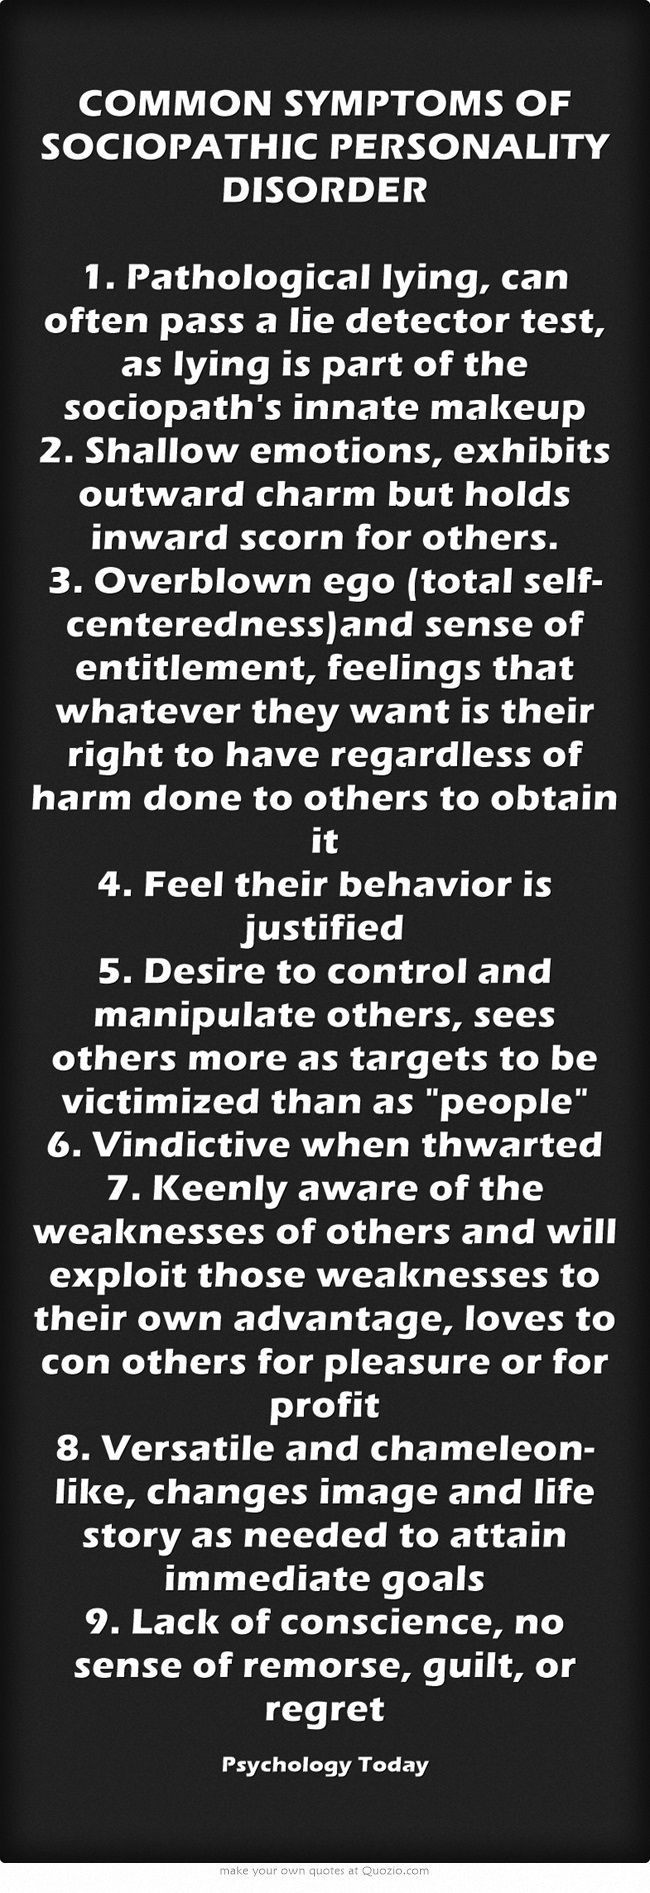 narcissistic abuse. divorce. abuse. narcissist. emotional abuse. narcissist spouse. dealing with a narcissist. gaslighting. manipulation. narcissist relationship. sociopath